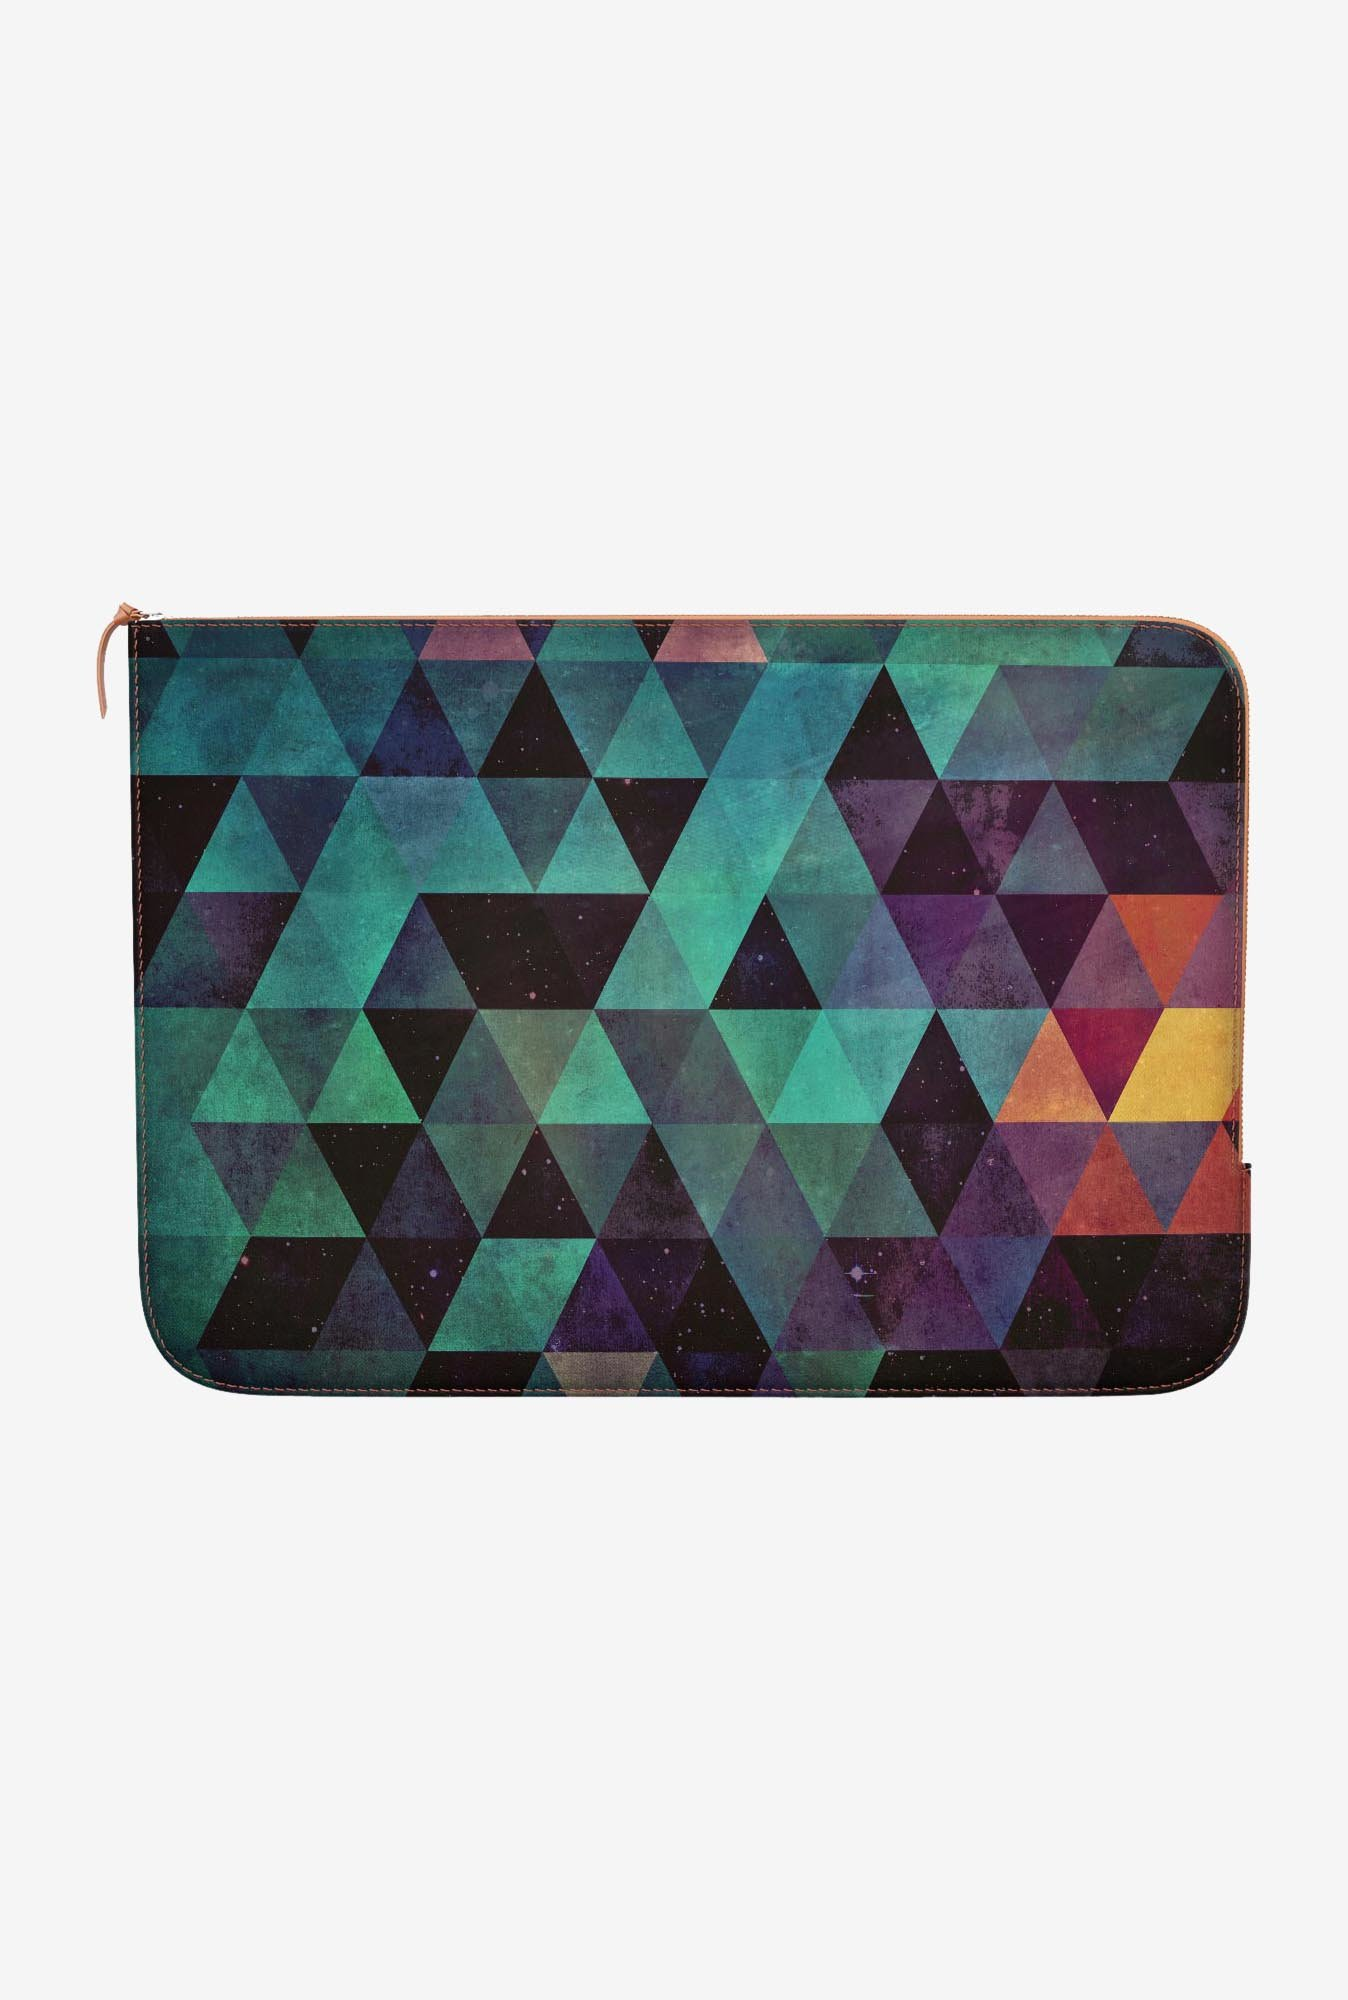 "DailyObjects Dyyp Tyyl Hrxtl Macbook Air 13"" Zippered Sleeve"